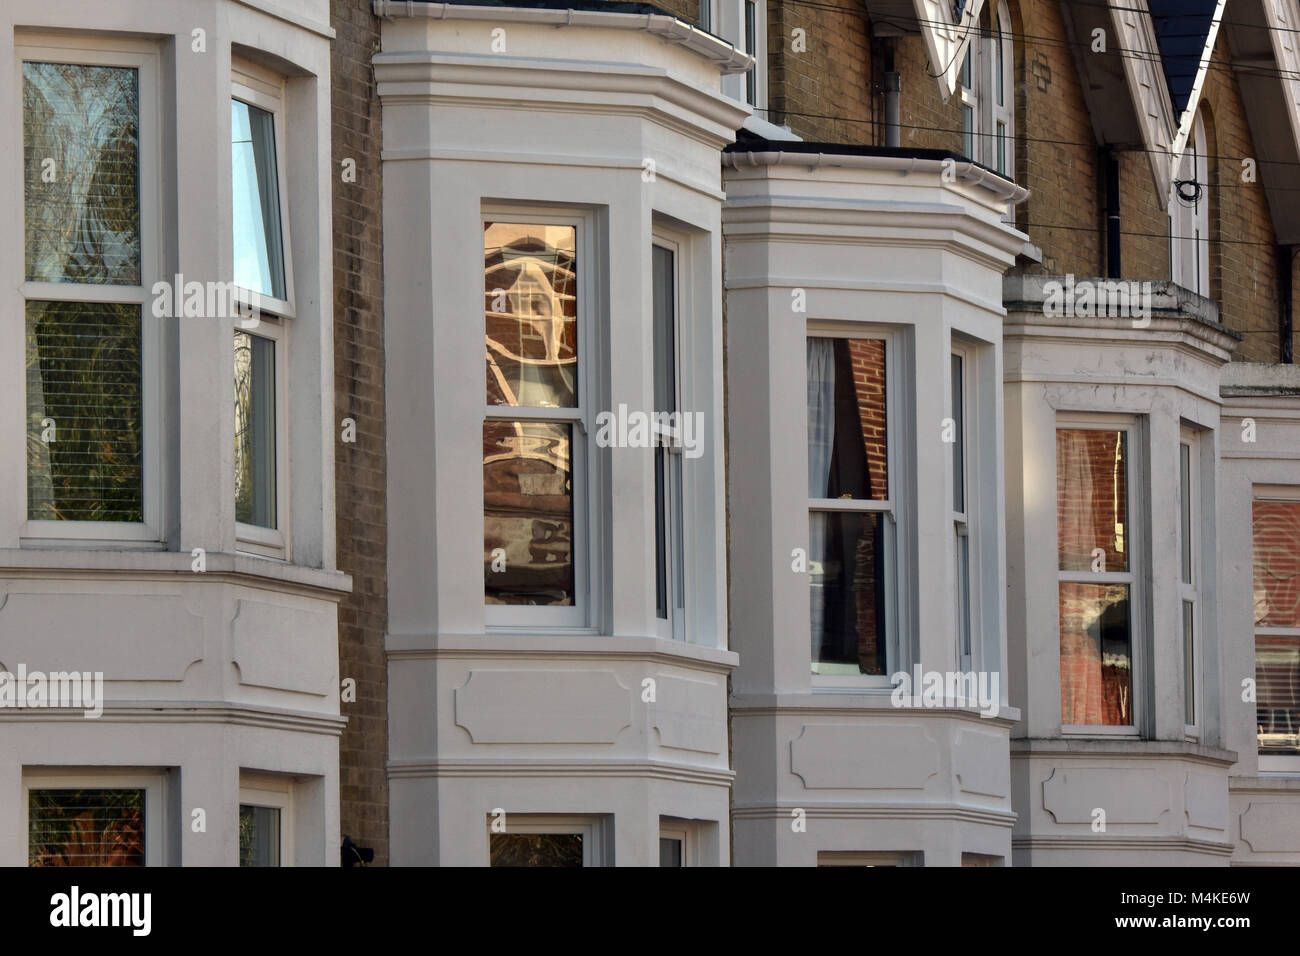 a row or line of terraced houses with bay windows on a street in a town centre. patterns formed by buildings in - Stock Image